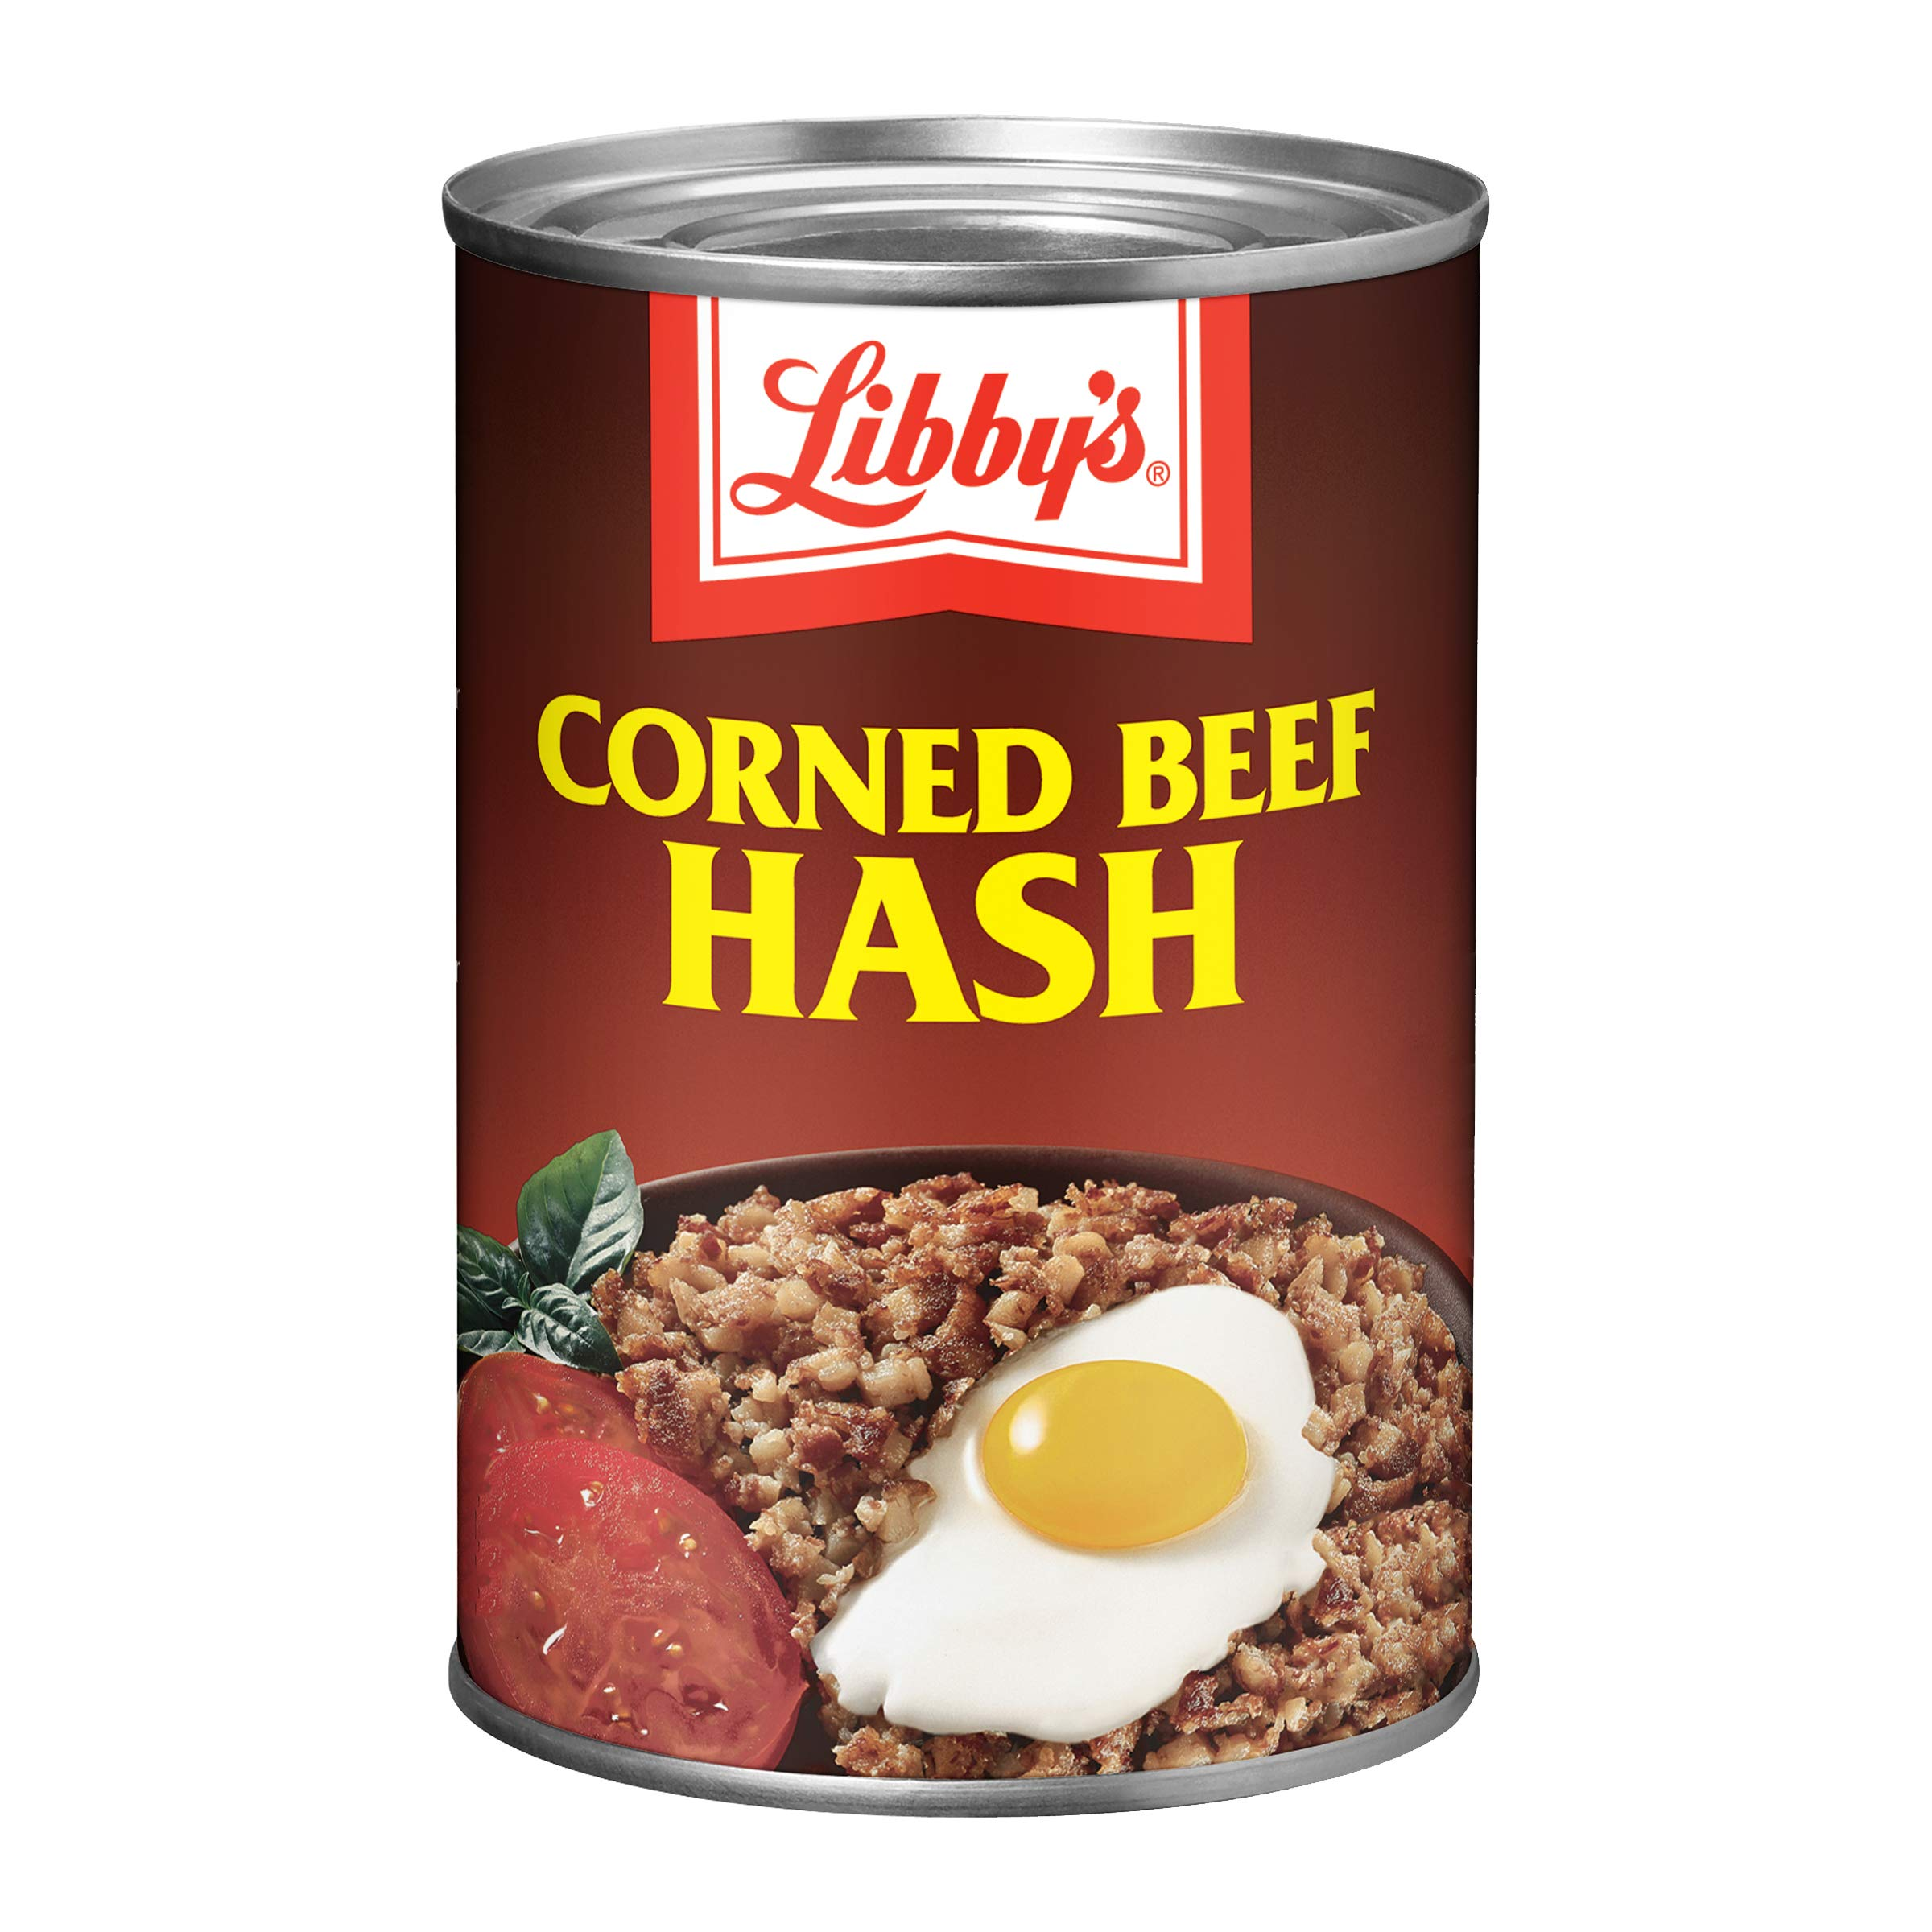 Libby's Corned Beef Hash, 15 Ounce, Pack of 12